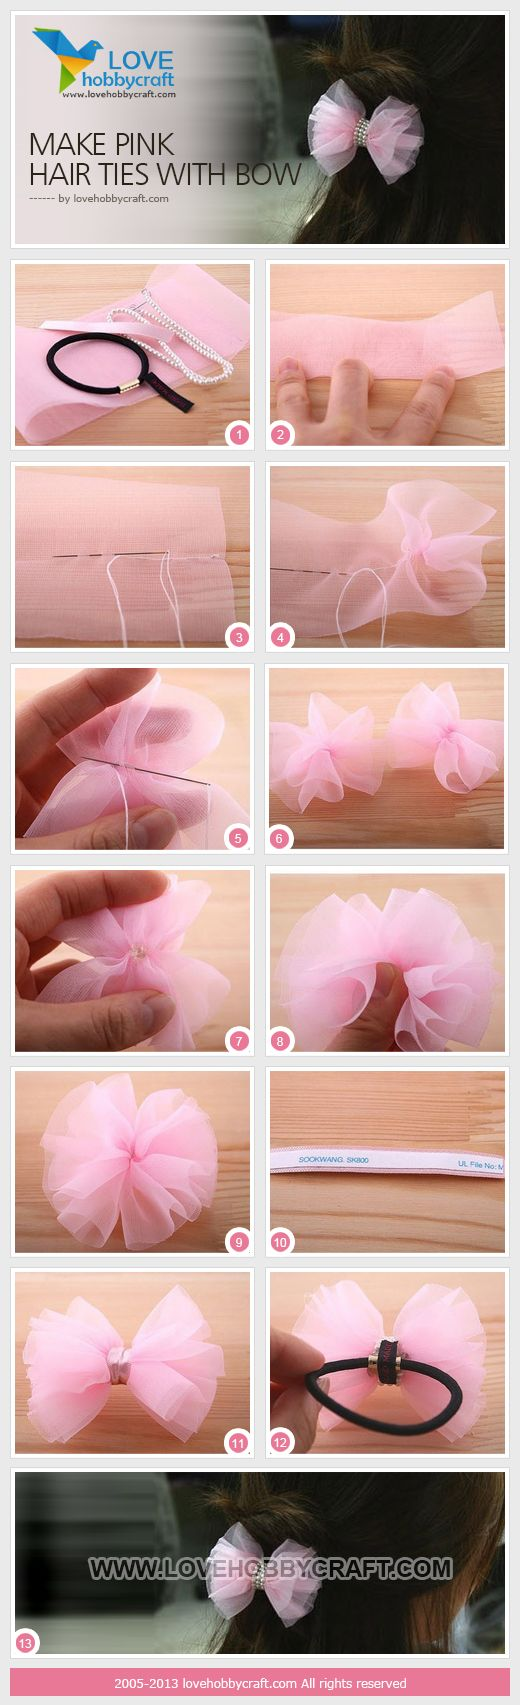 Make pink hair ties with bow